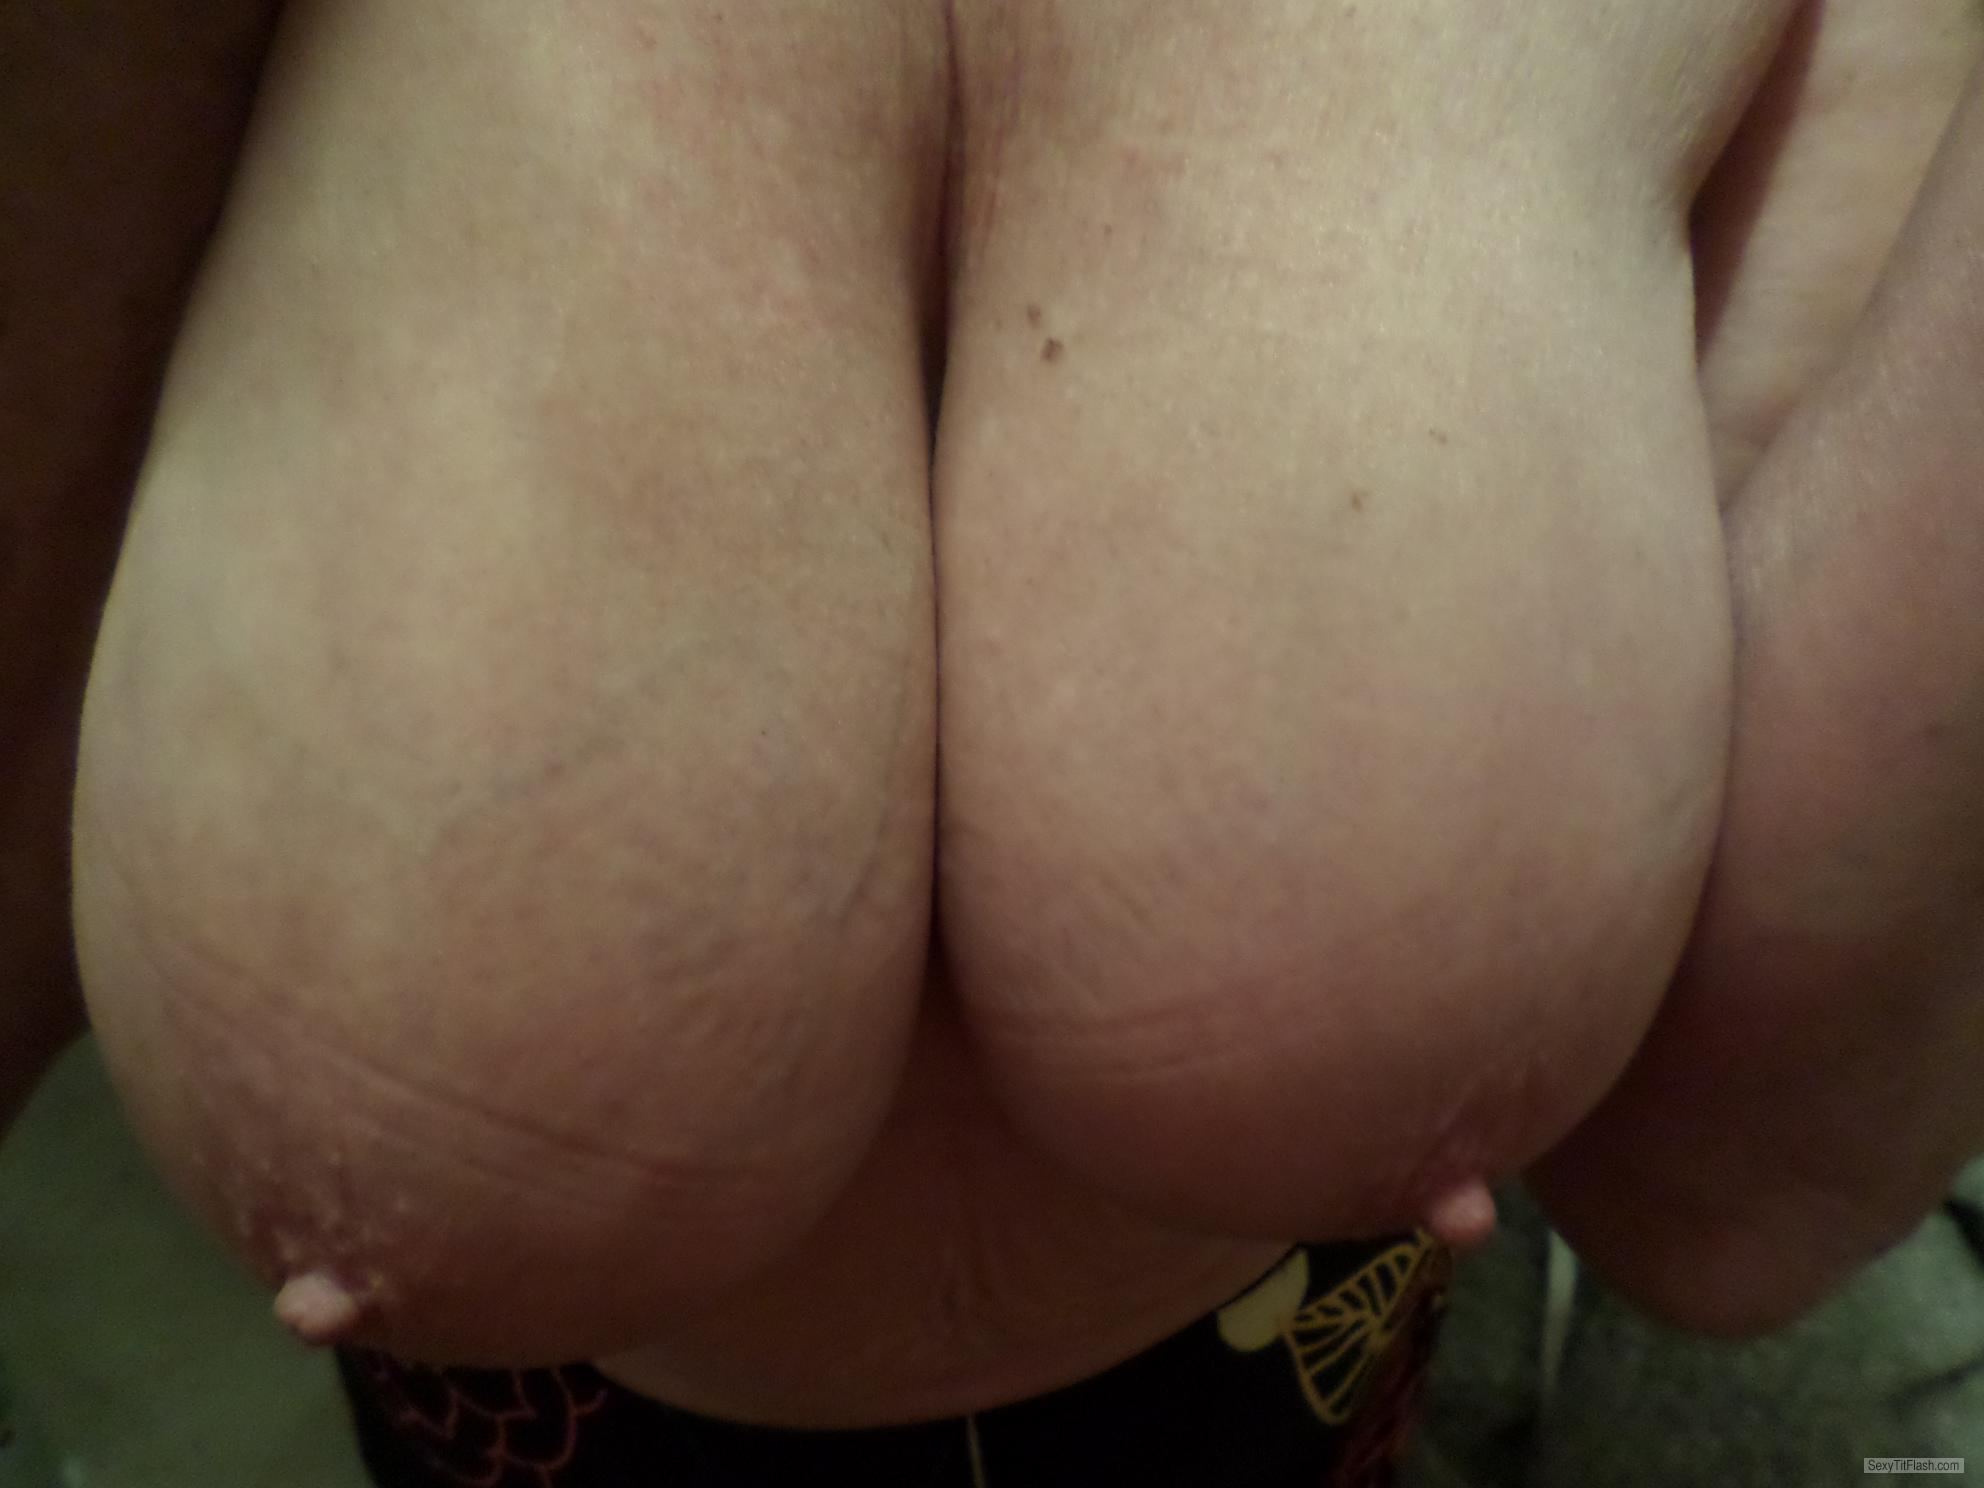 Tit Flash: My Extremely Big Tits - Horny 1 from United Kingdom